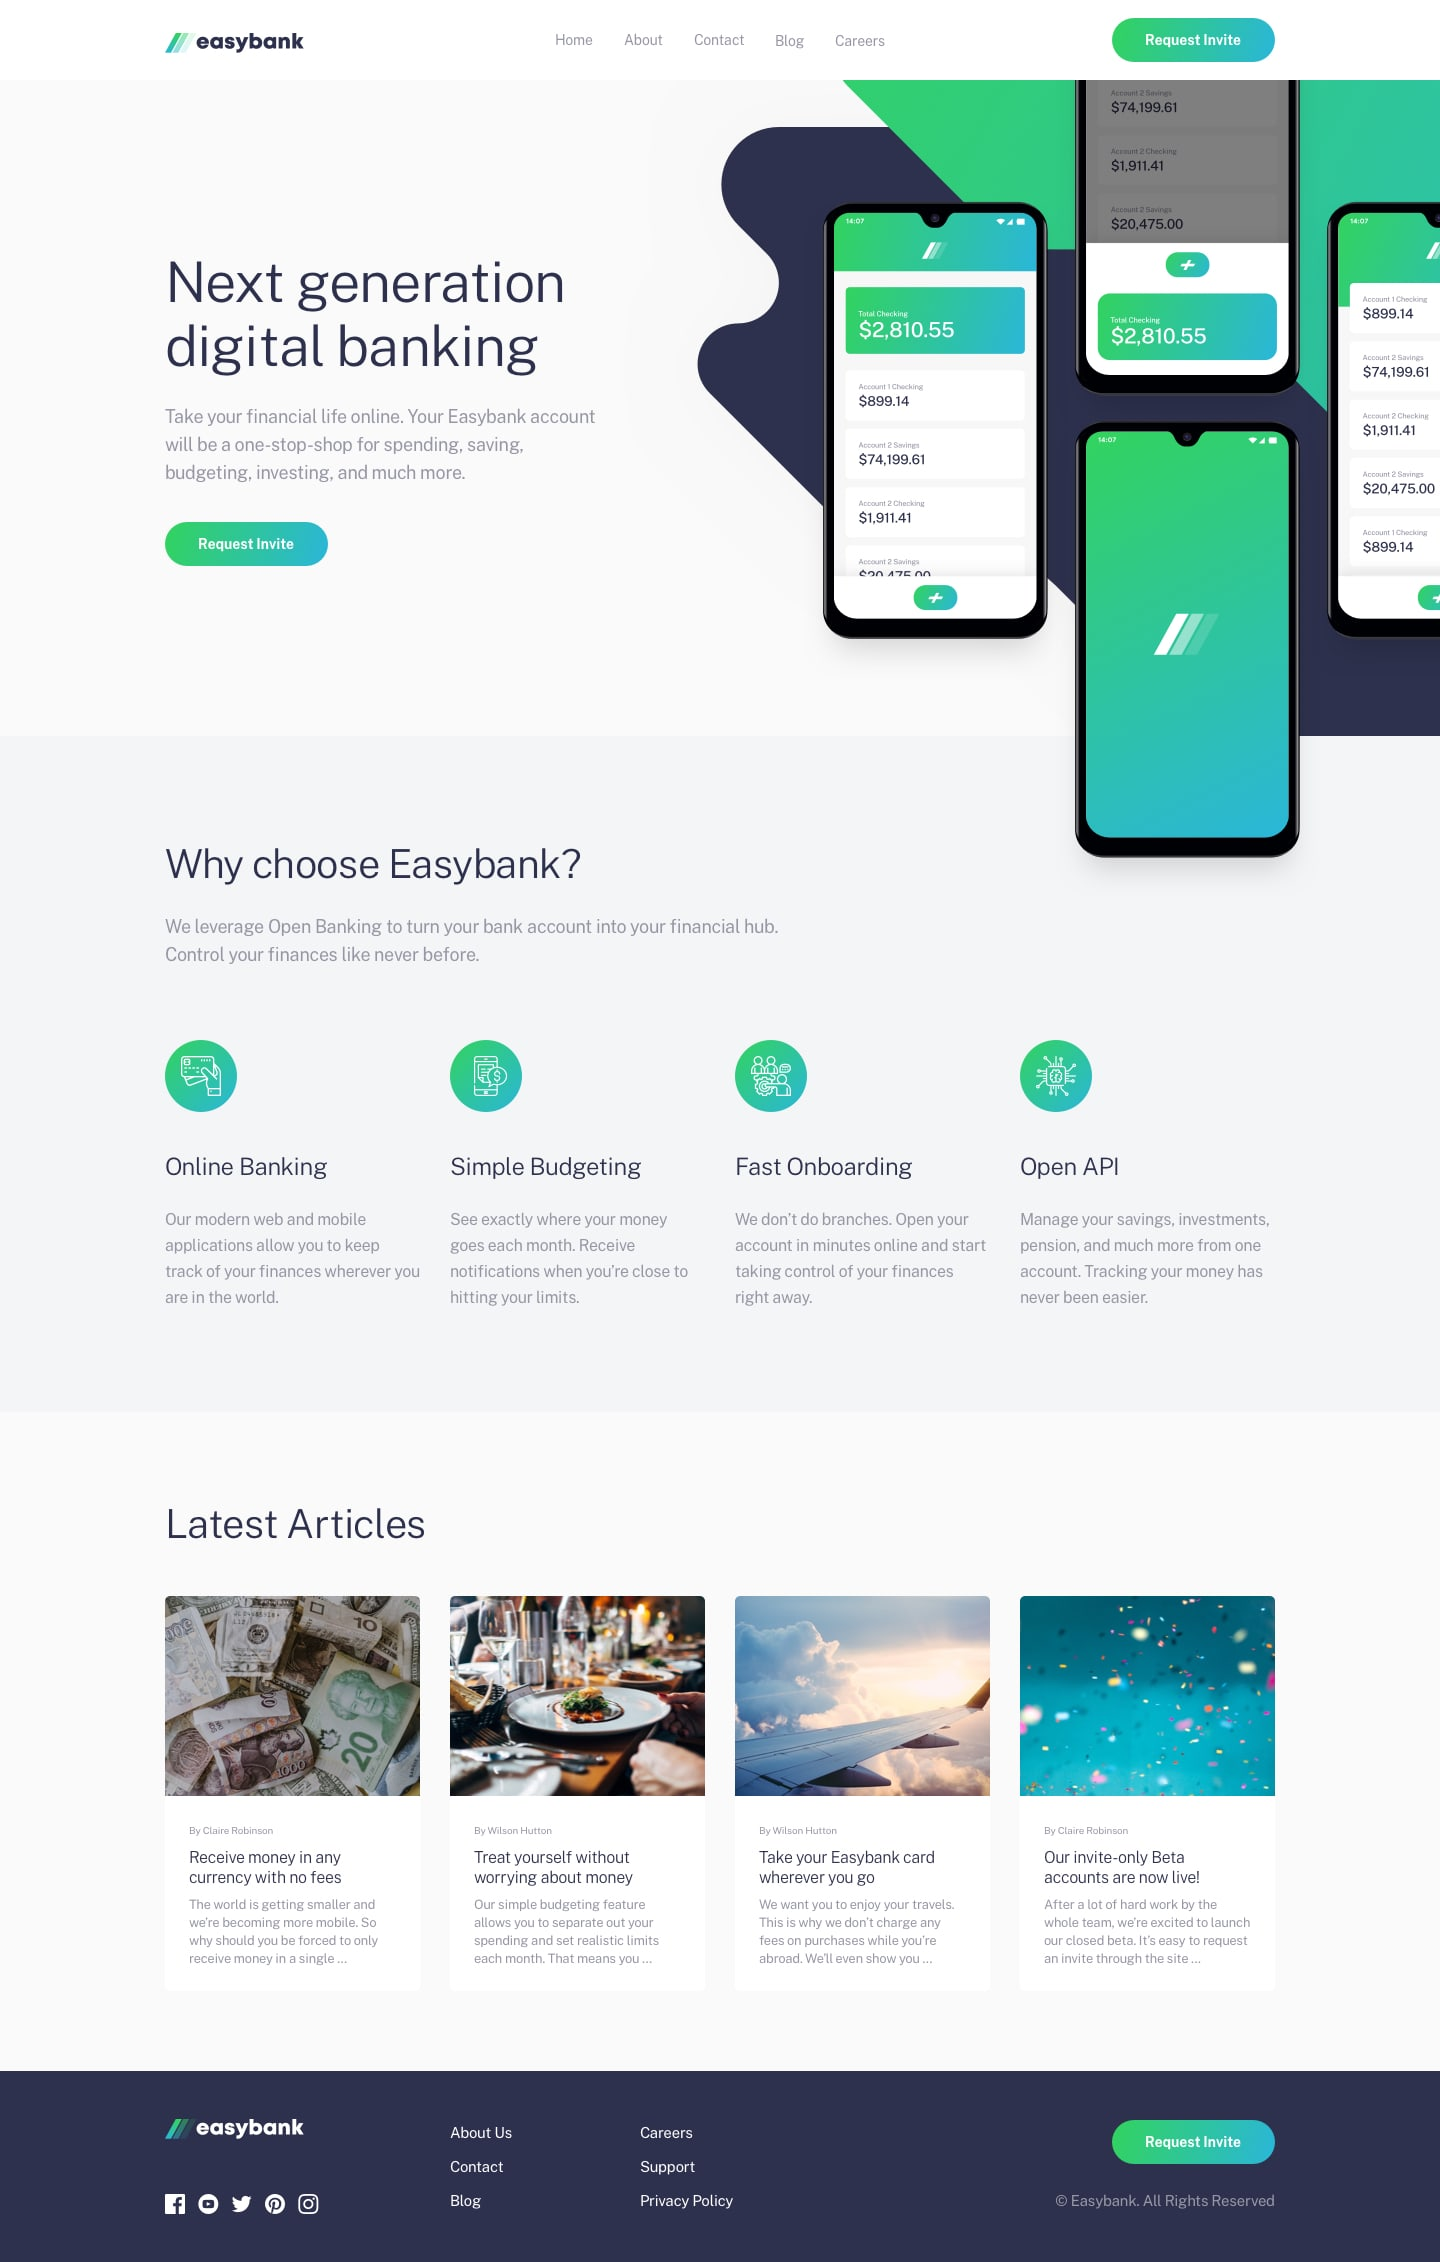 Design preview for Easybank landing page coding challenge